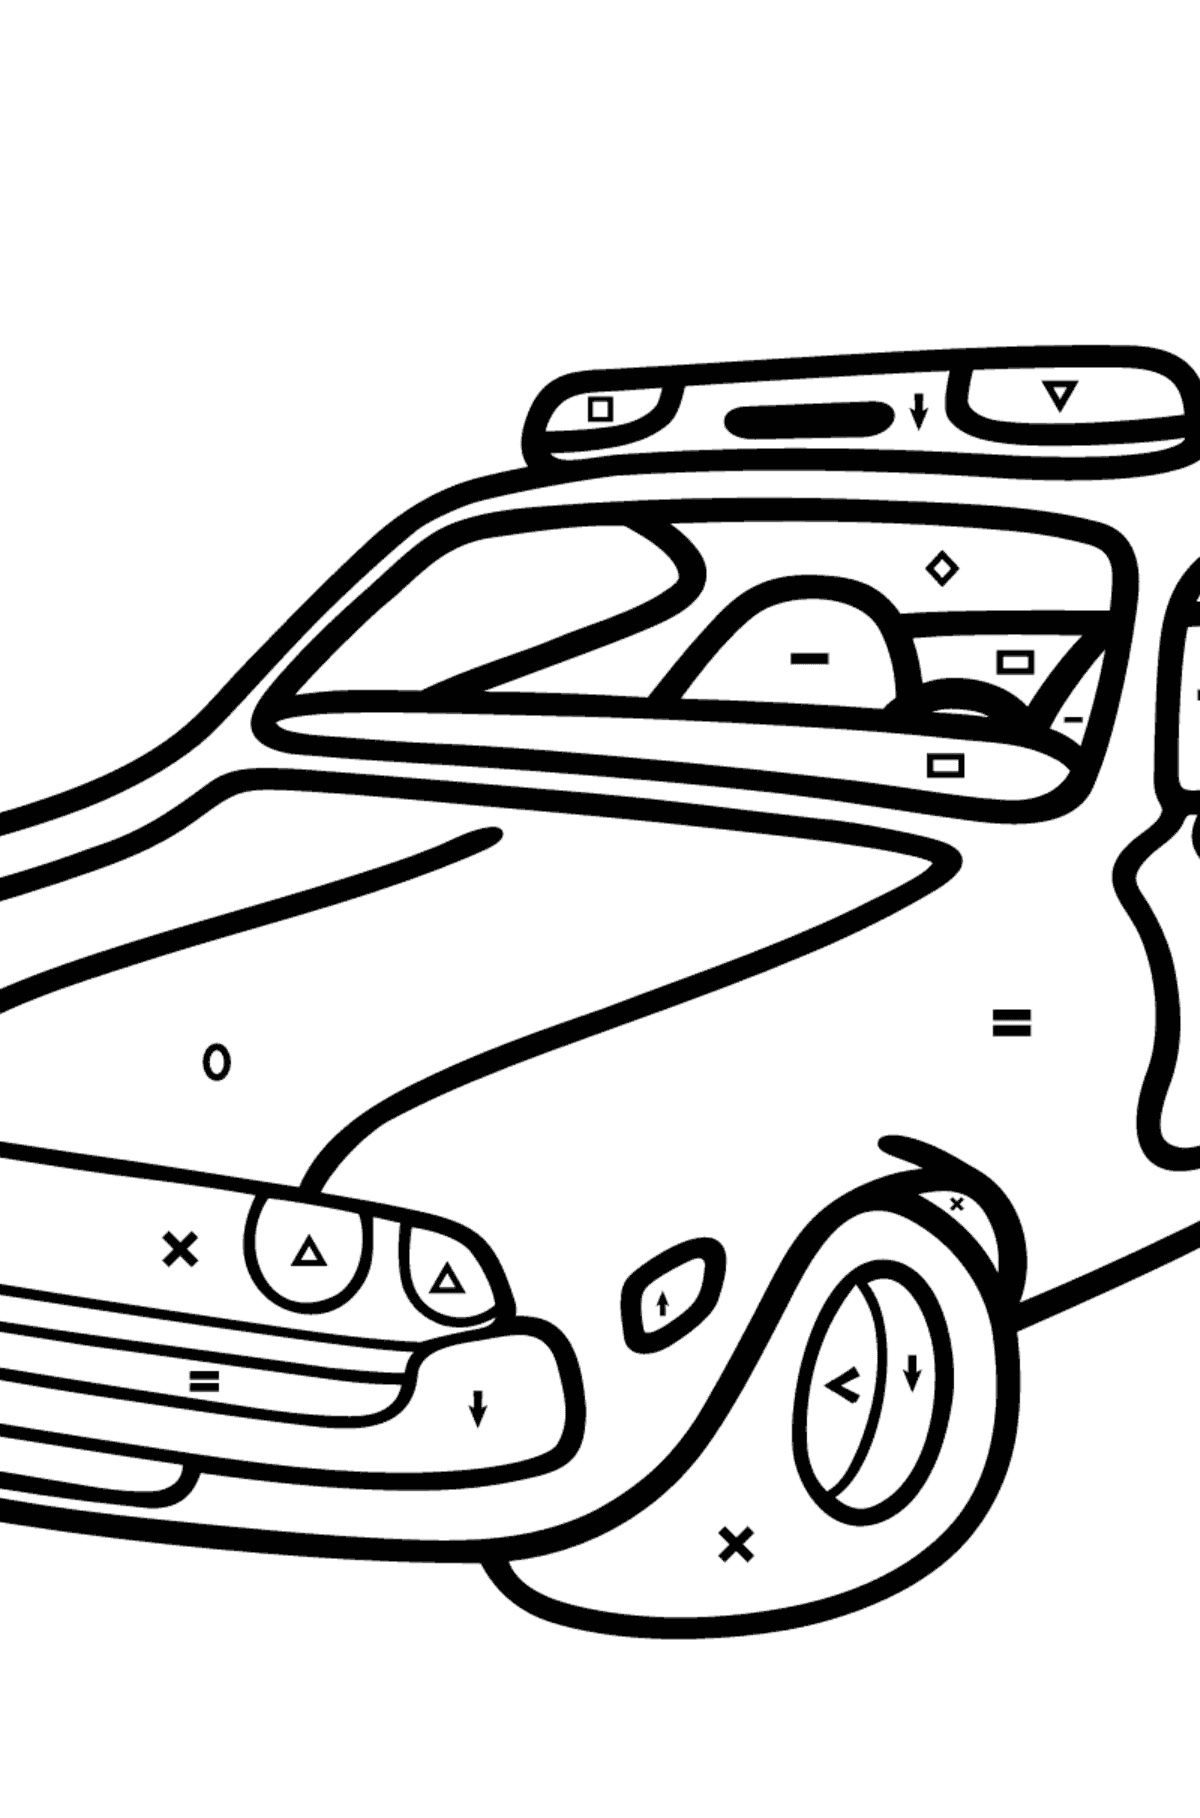 Coloring Page - A Dark Gray Police Car for Kids  - Color by Symbols and Geometric Shapes